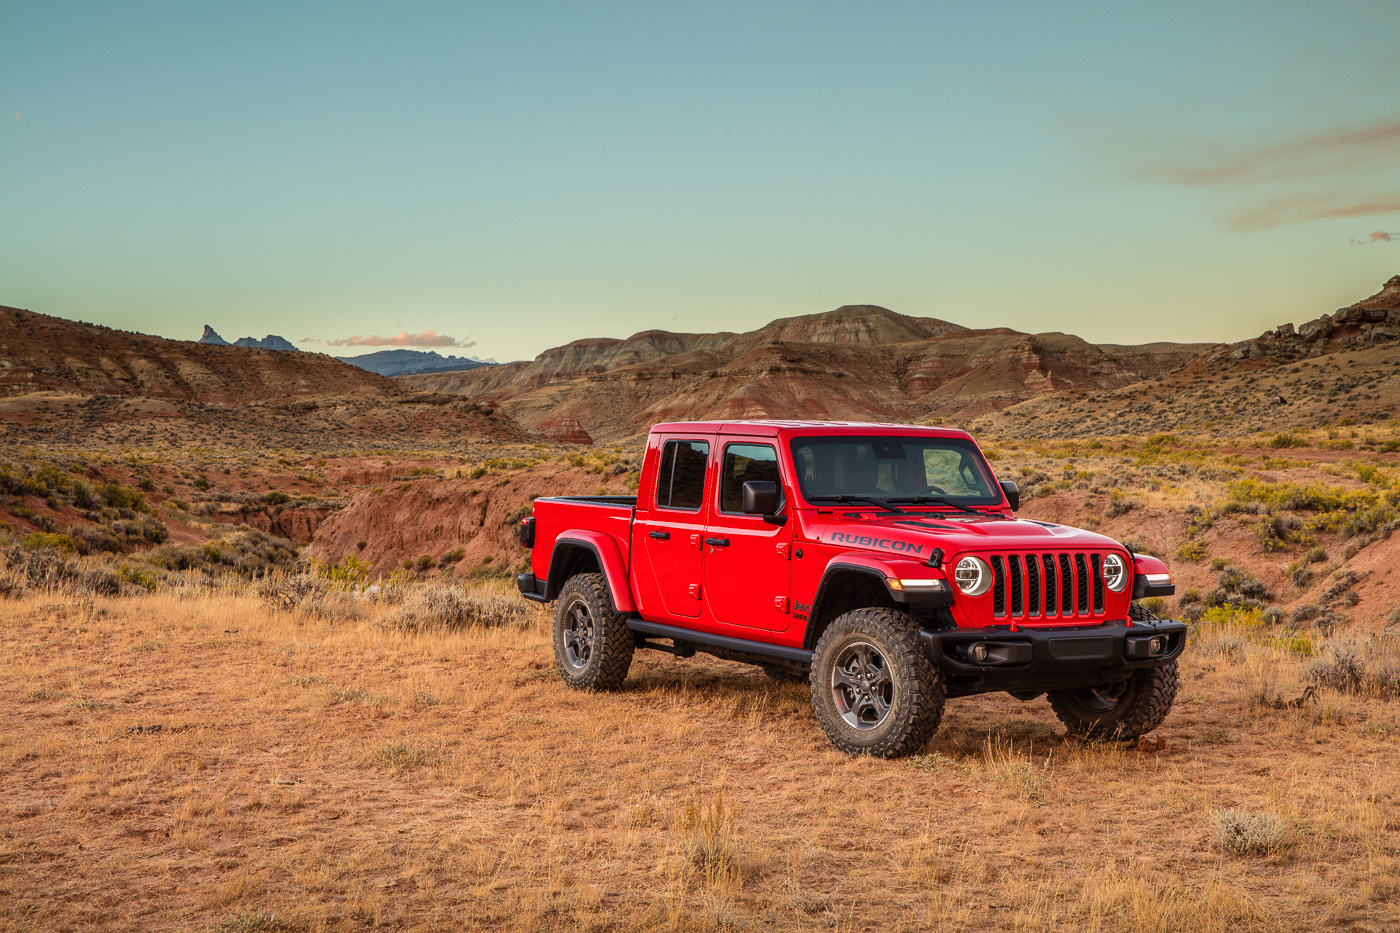 Jeep-Gladiator-Rubicon-72.jpg